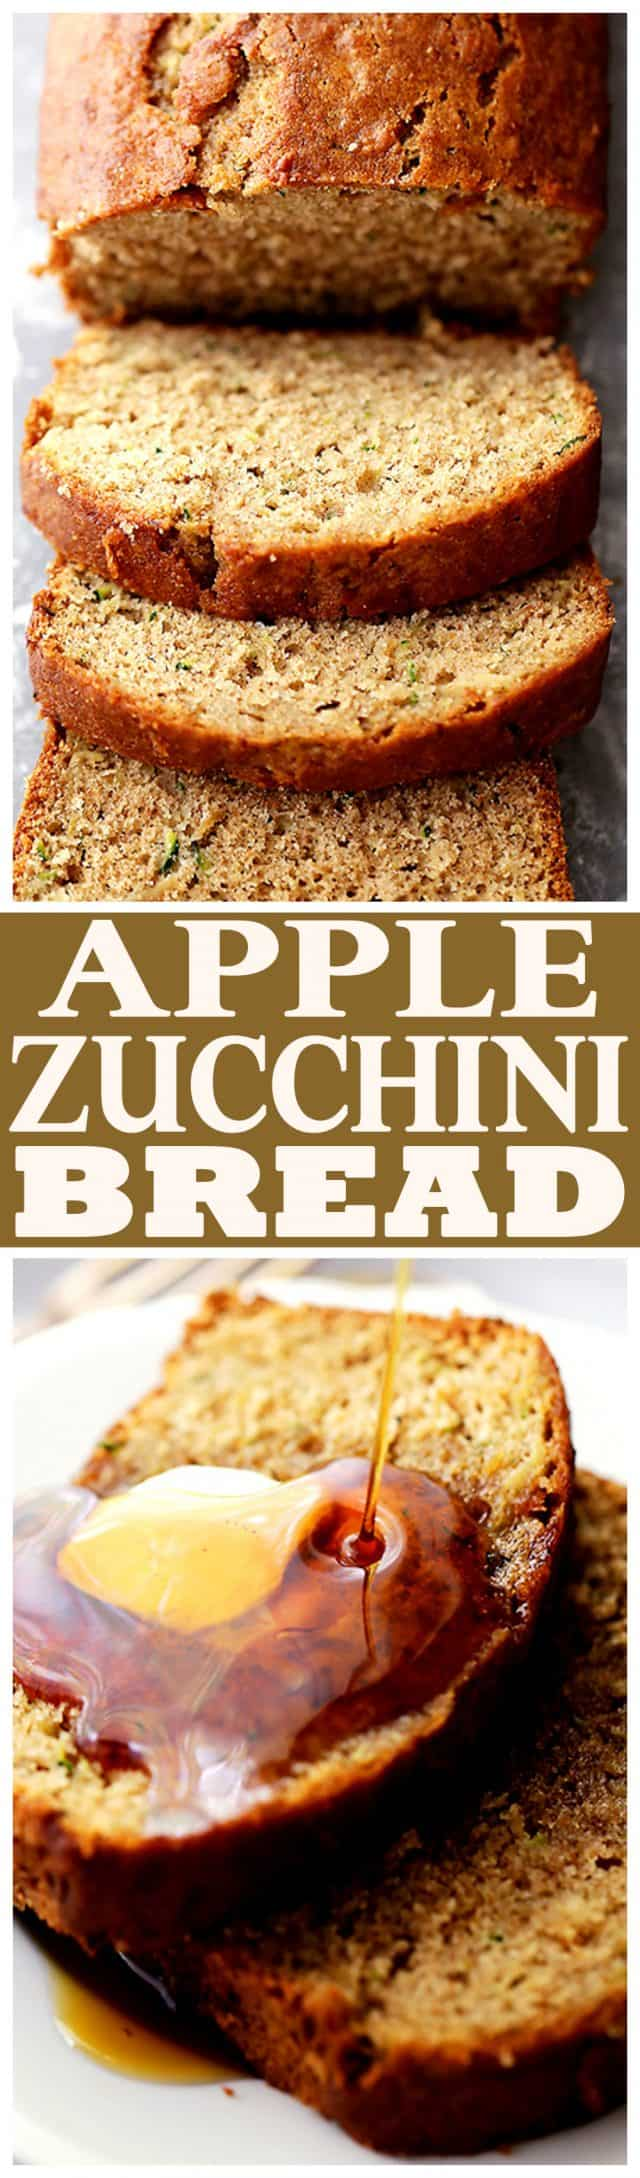 Healthy Apple and Zucchini Bread - Fluffy, moist, sweet, and delicious whole wheat quick bread made with zucchini and apples.